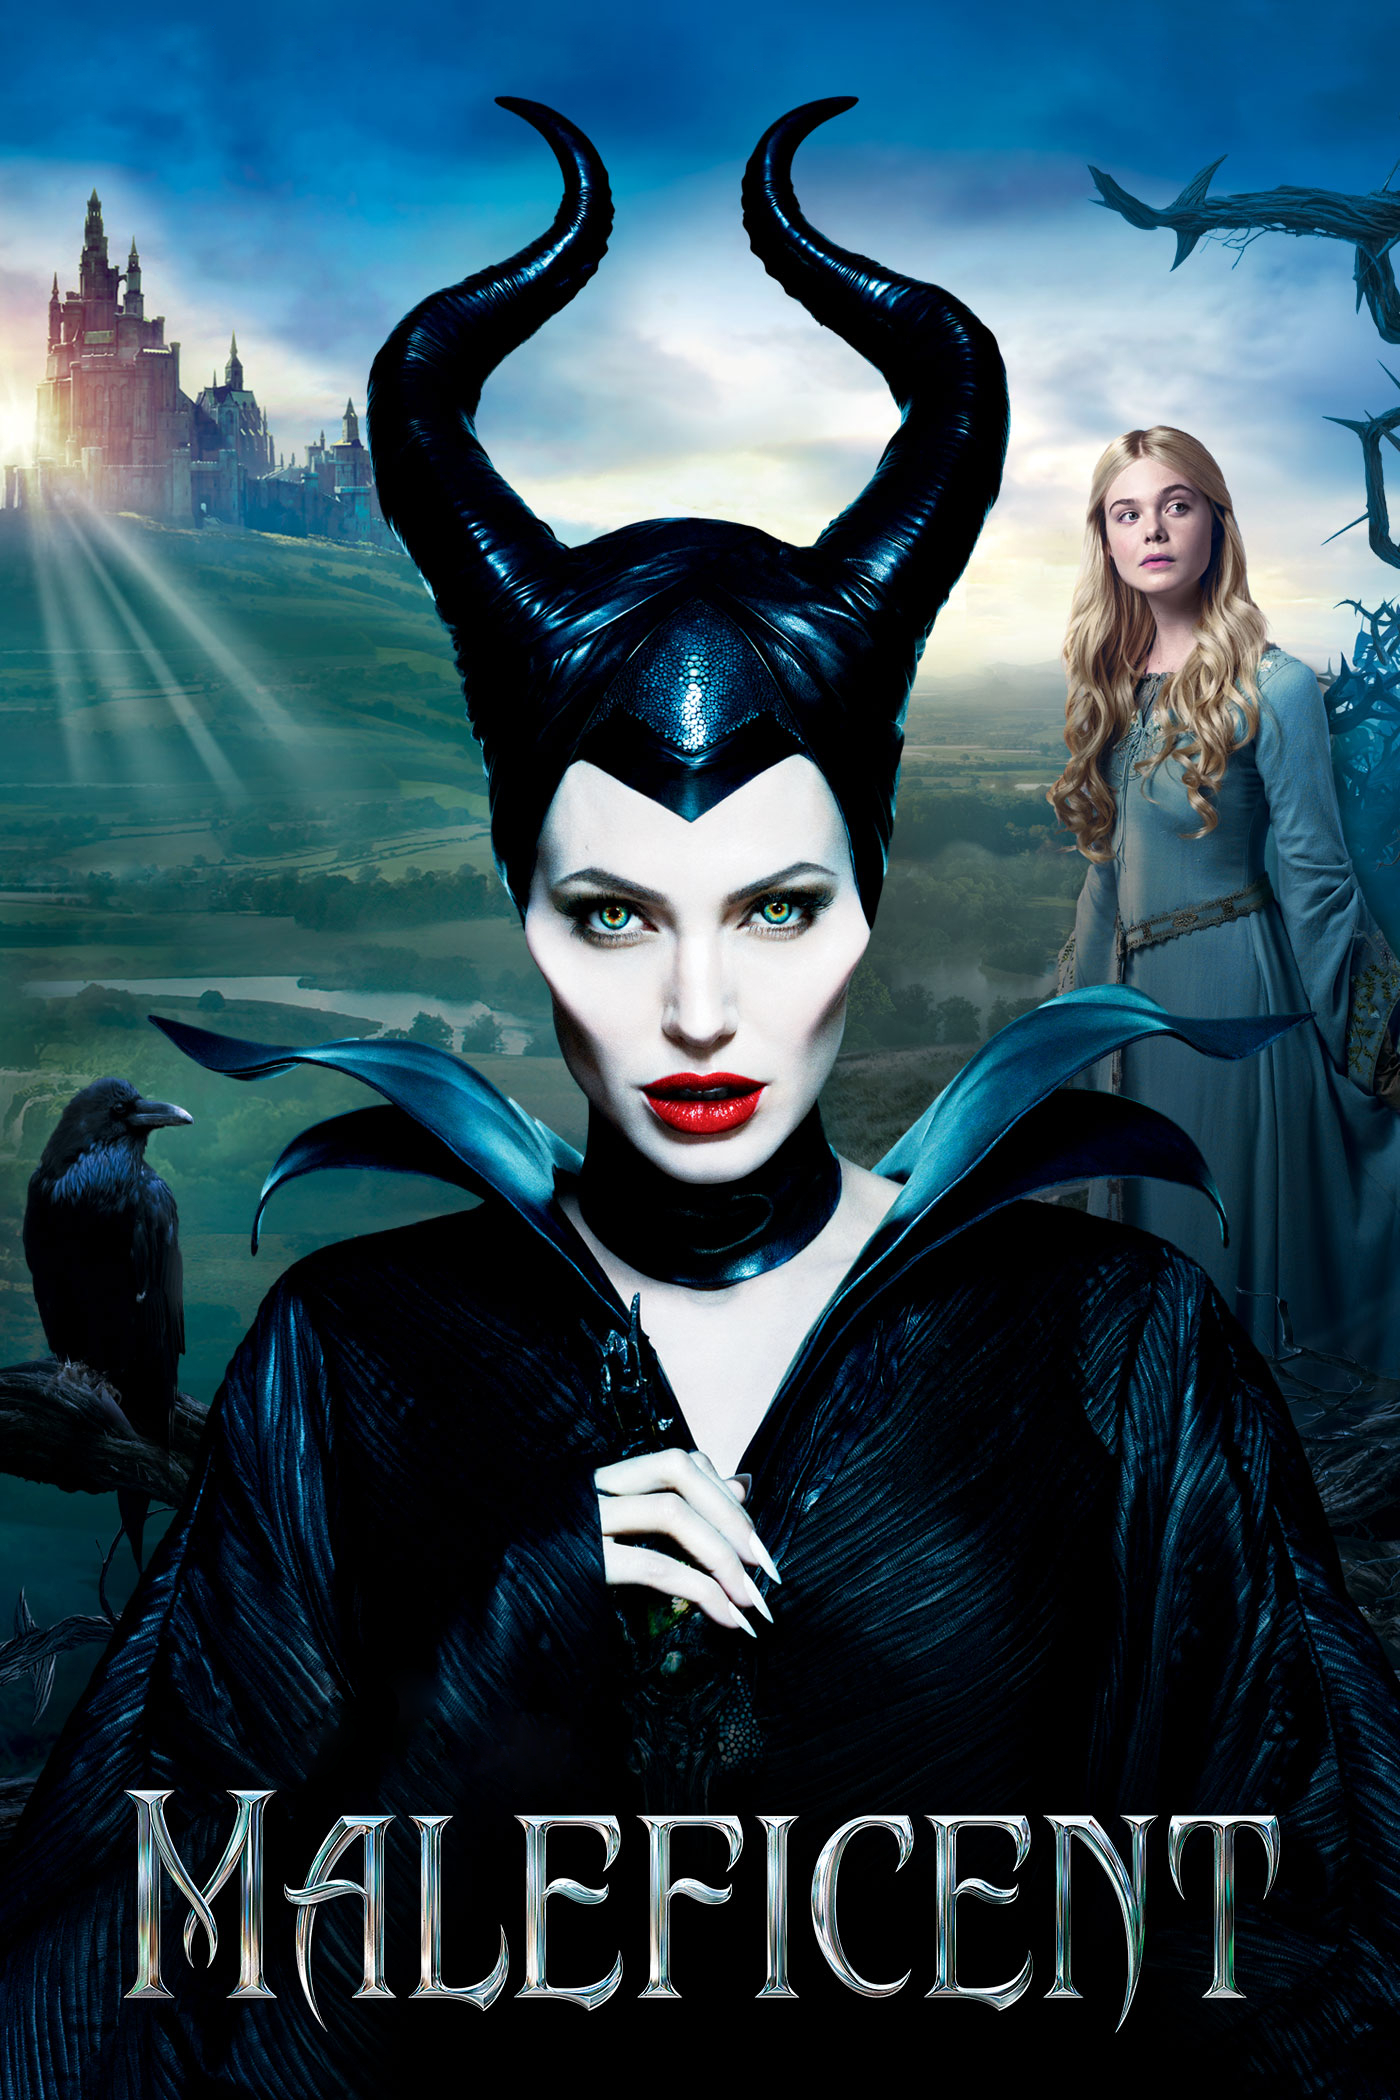 Maleficent: I really liked this movie and so did the kids